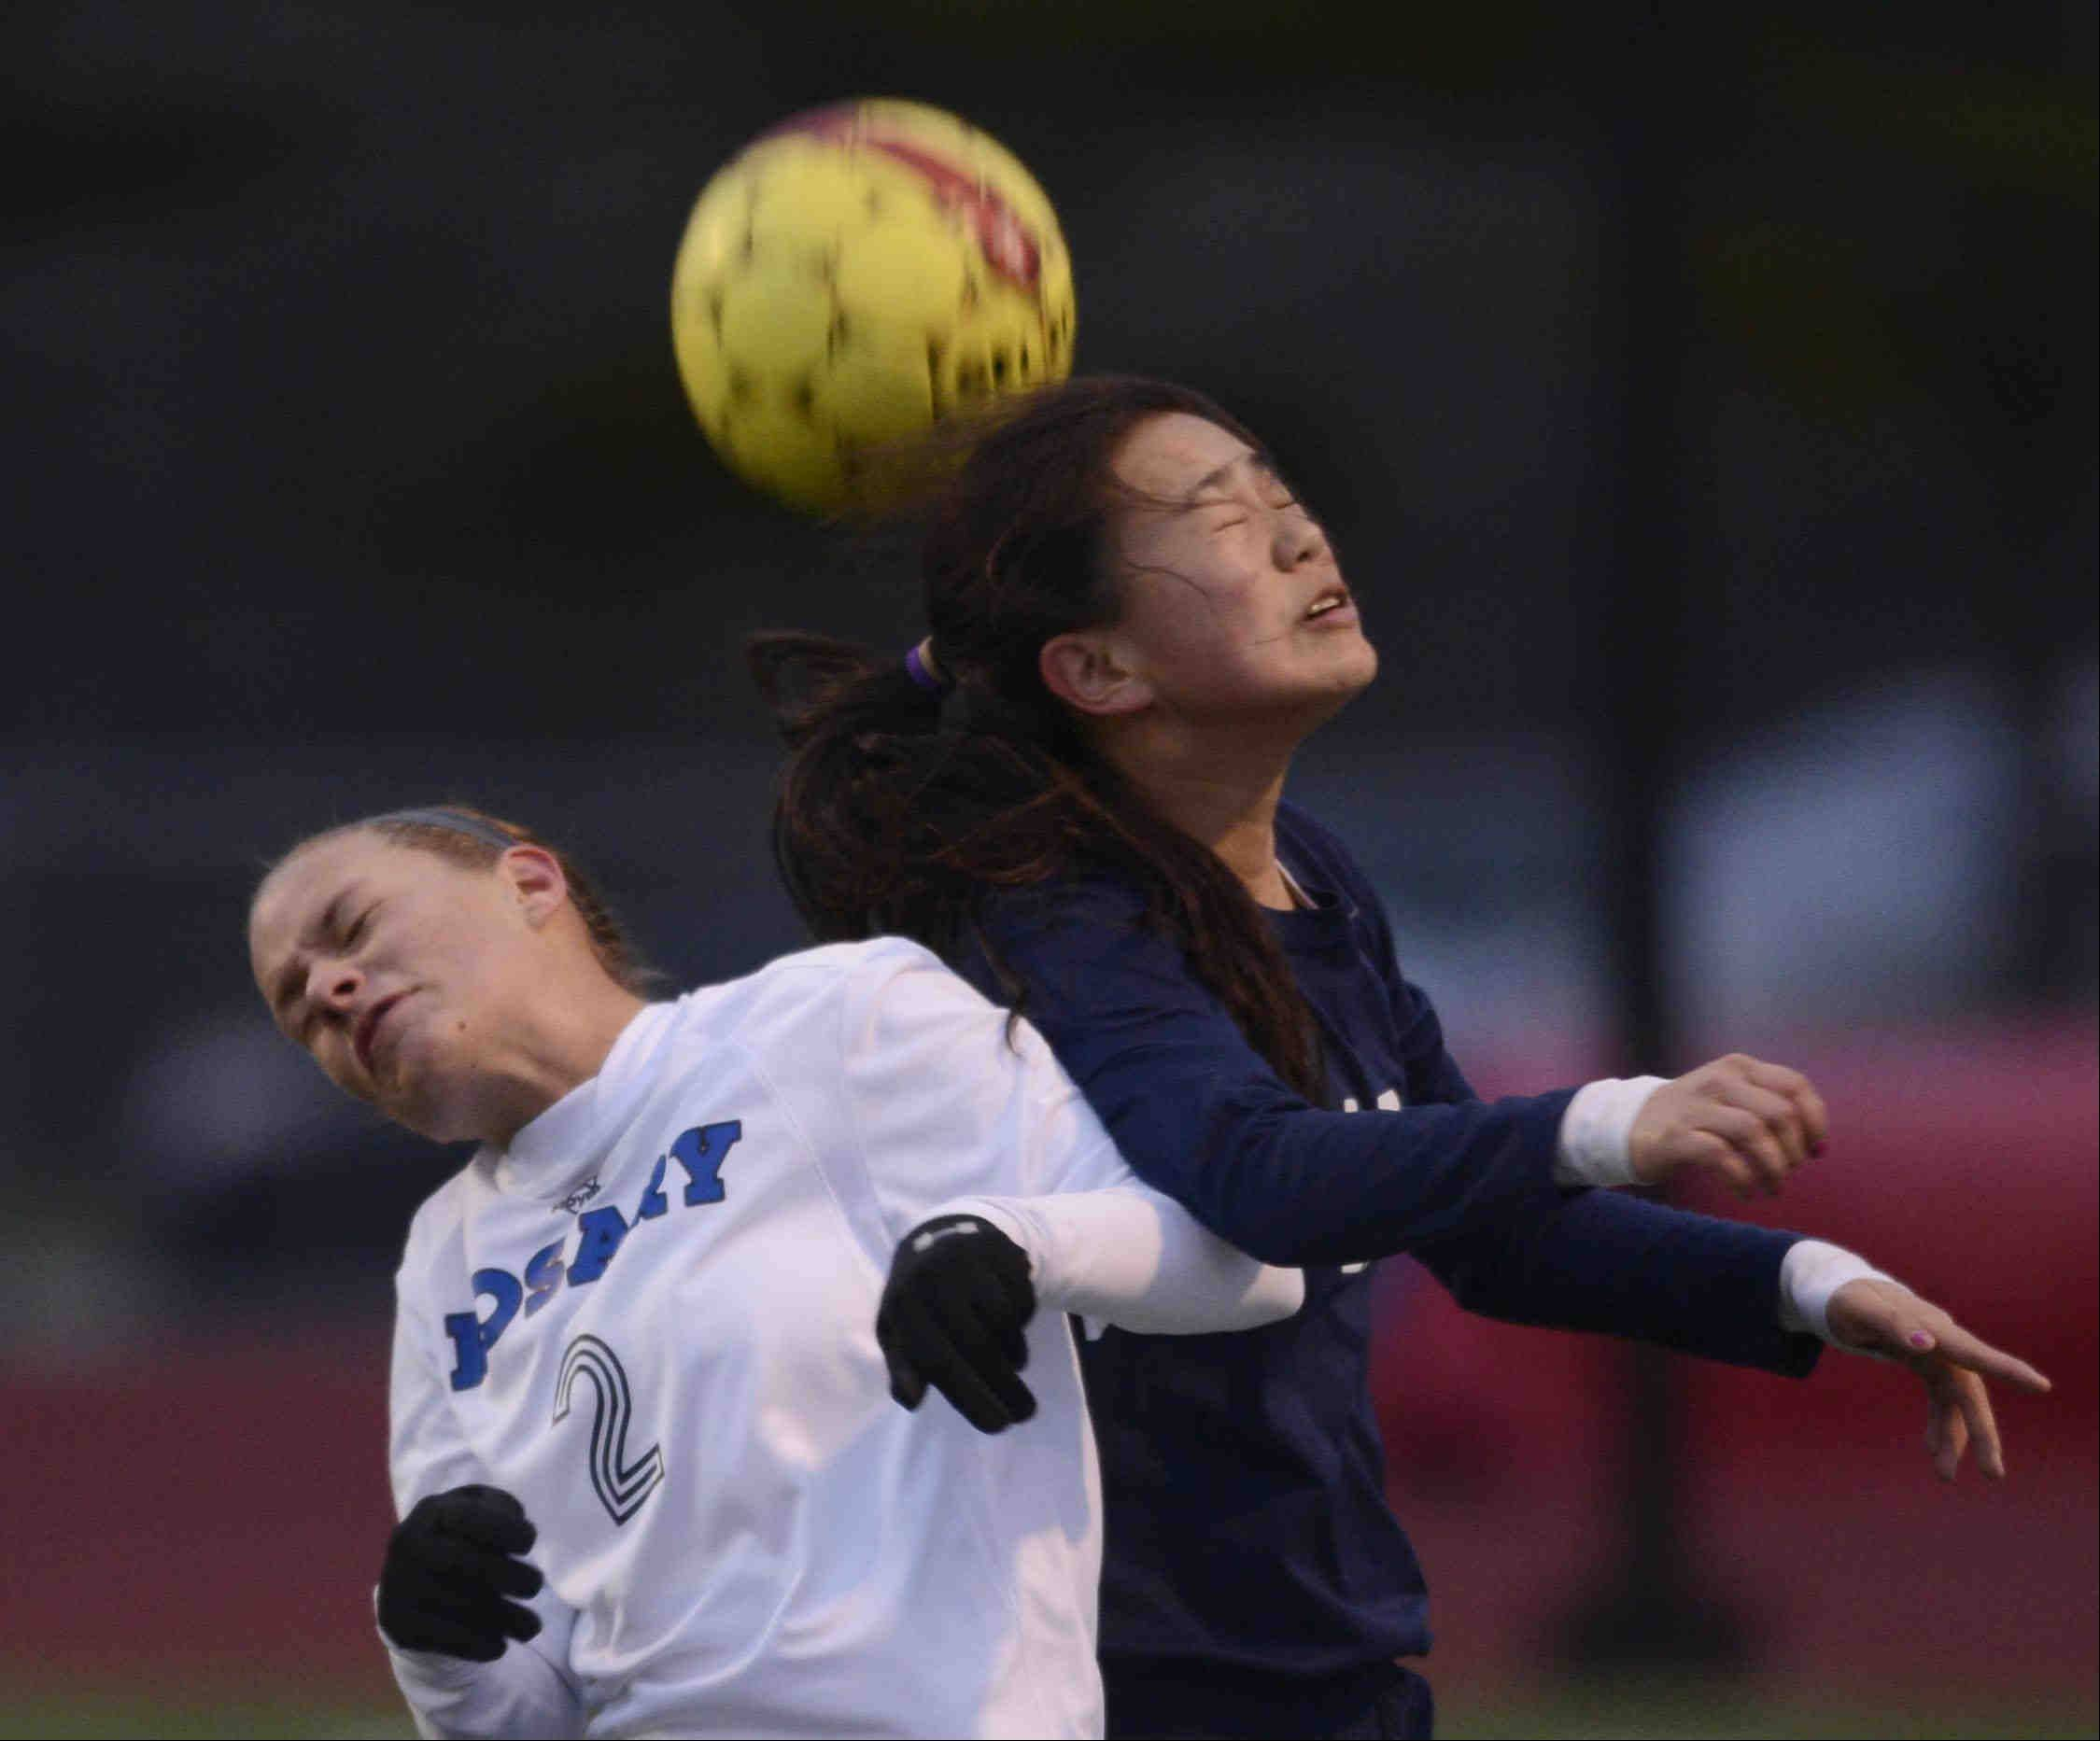 Rosary's Molly Piech and West Aurora's Carli Hix collide as they compete for a header Wednesday in Aurora.